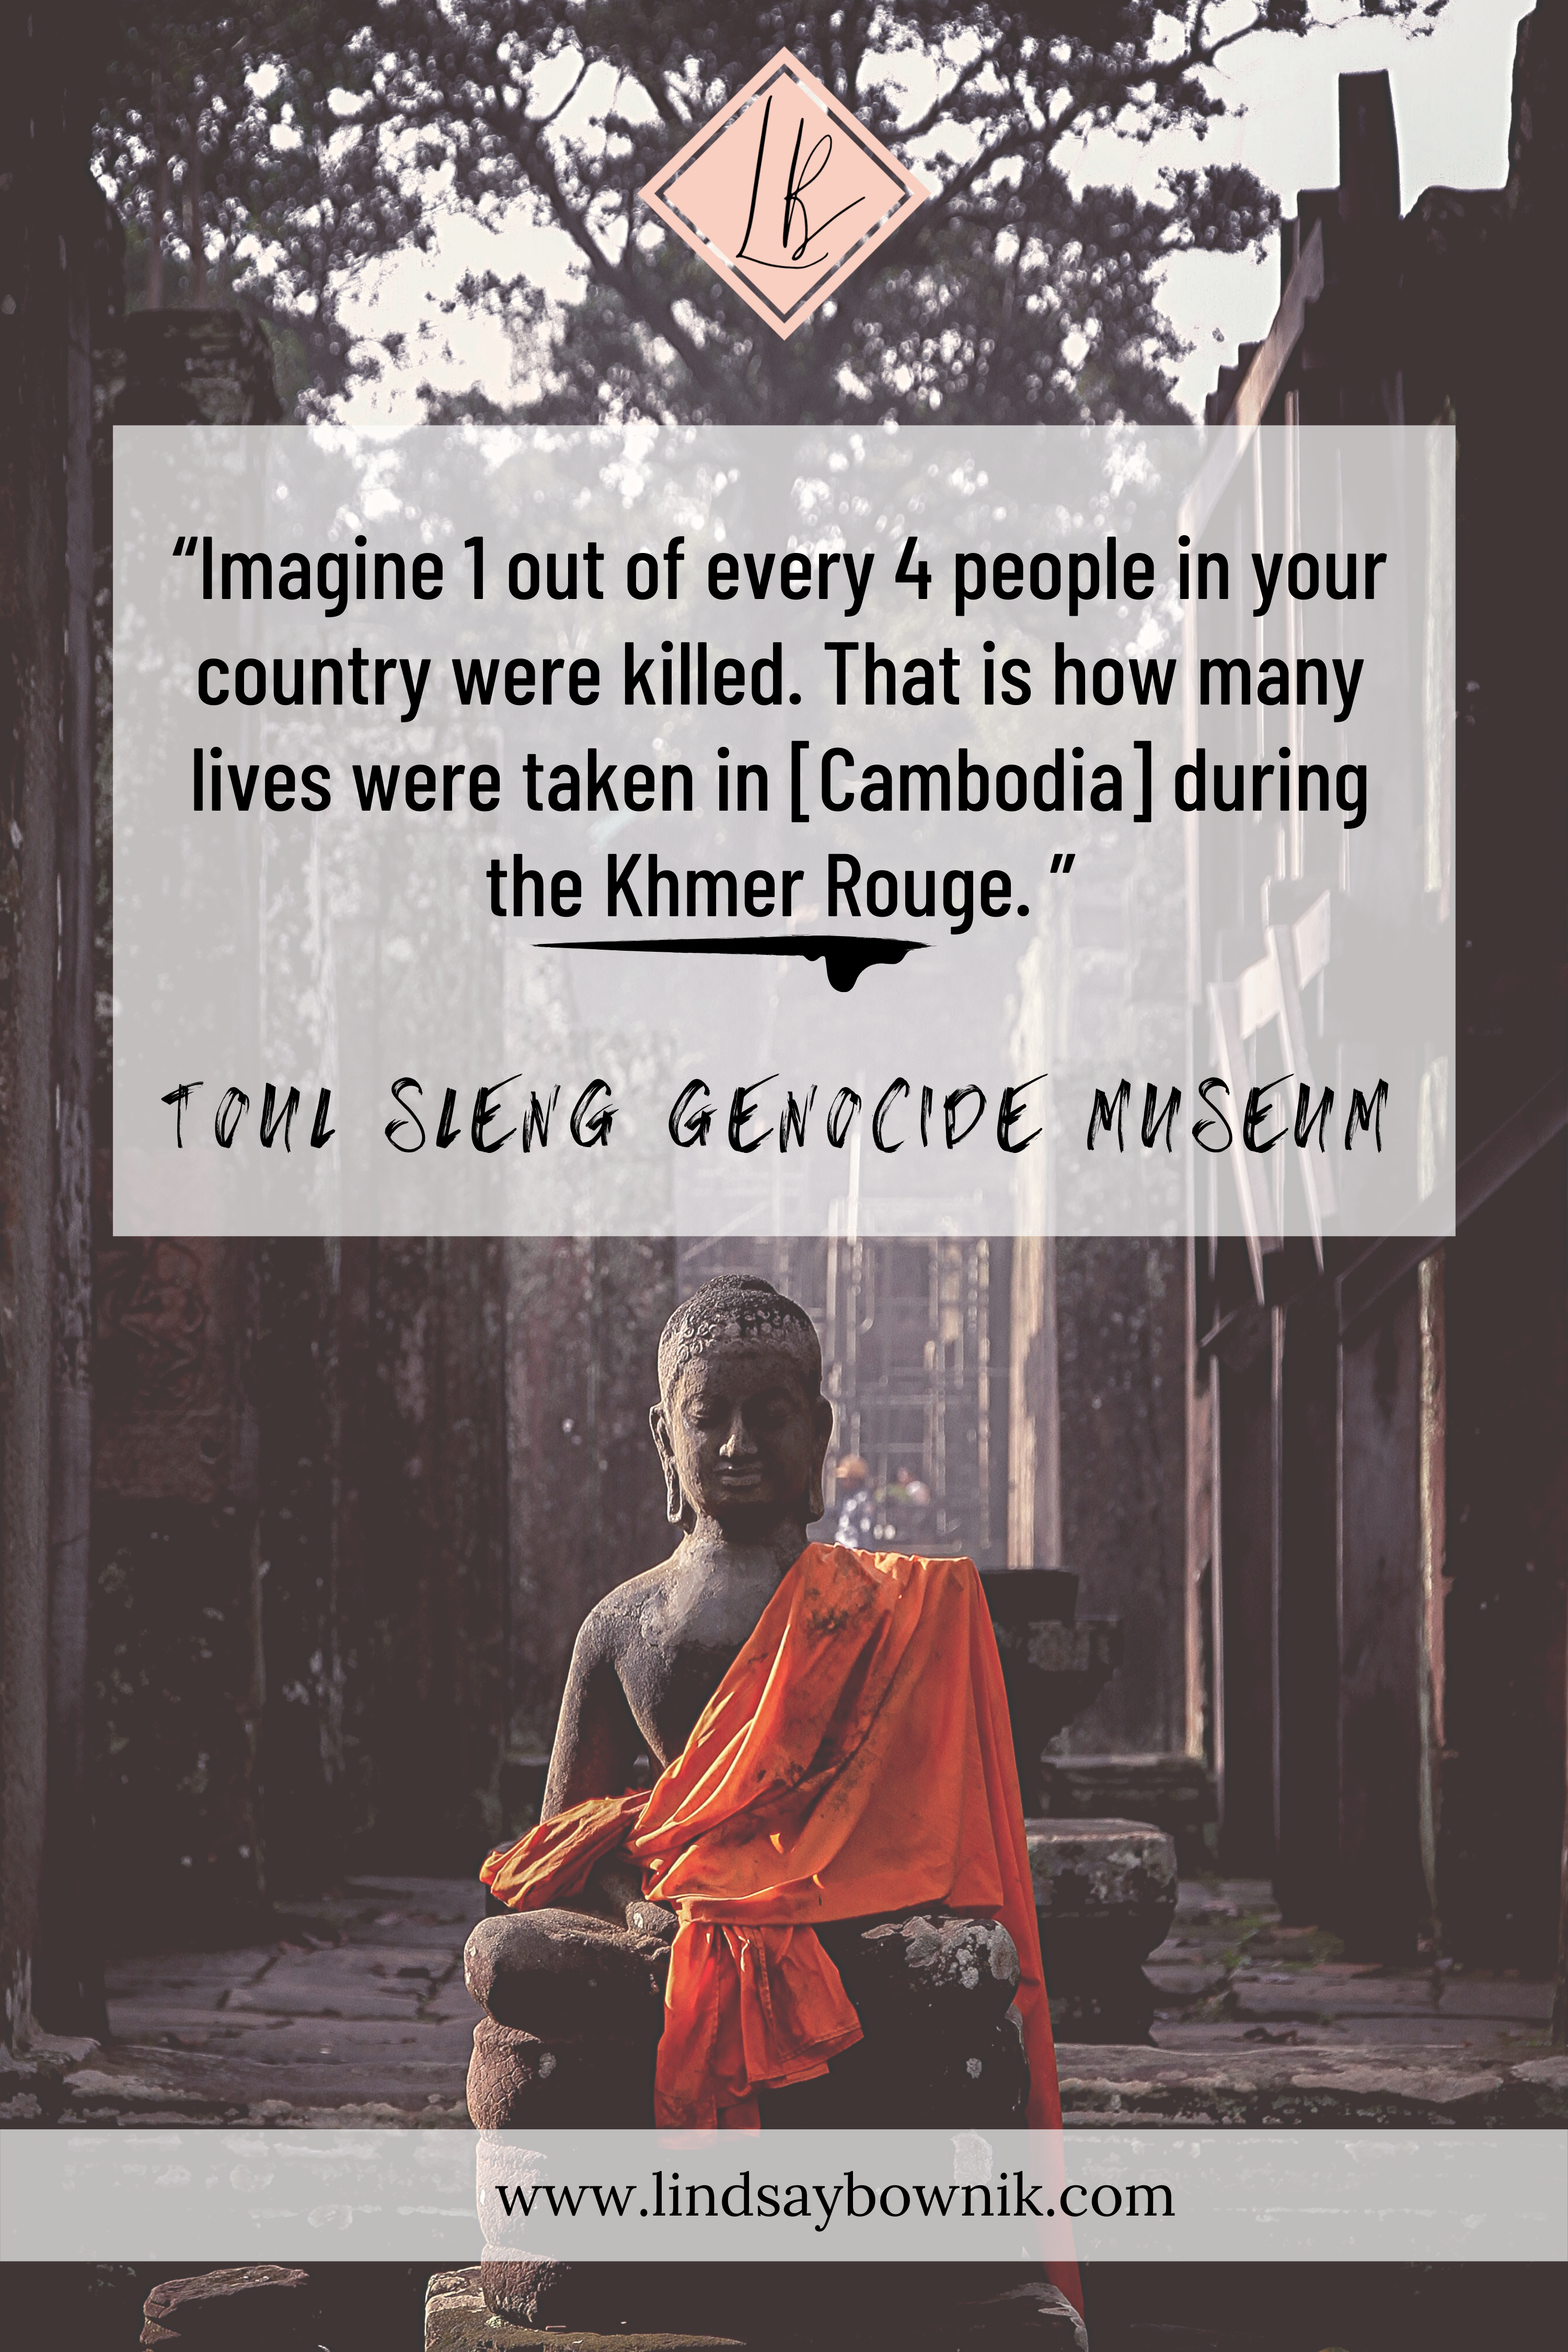 quote from tour guide in Cambodia's genocide museum